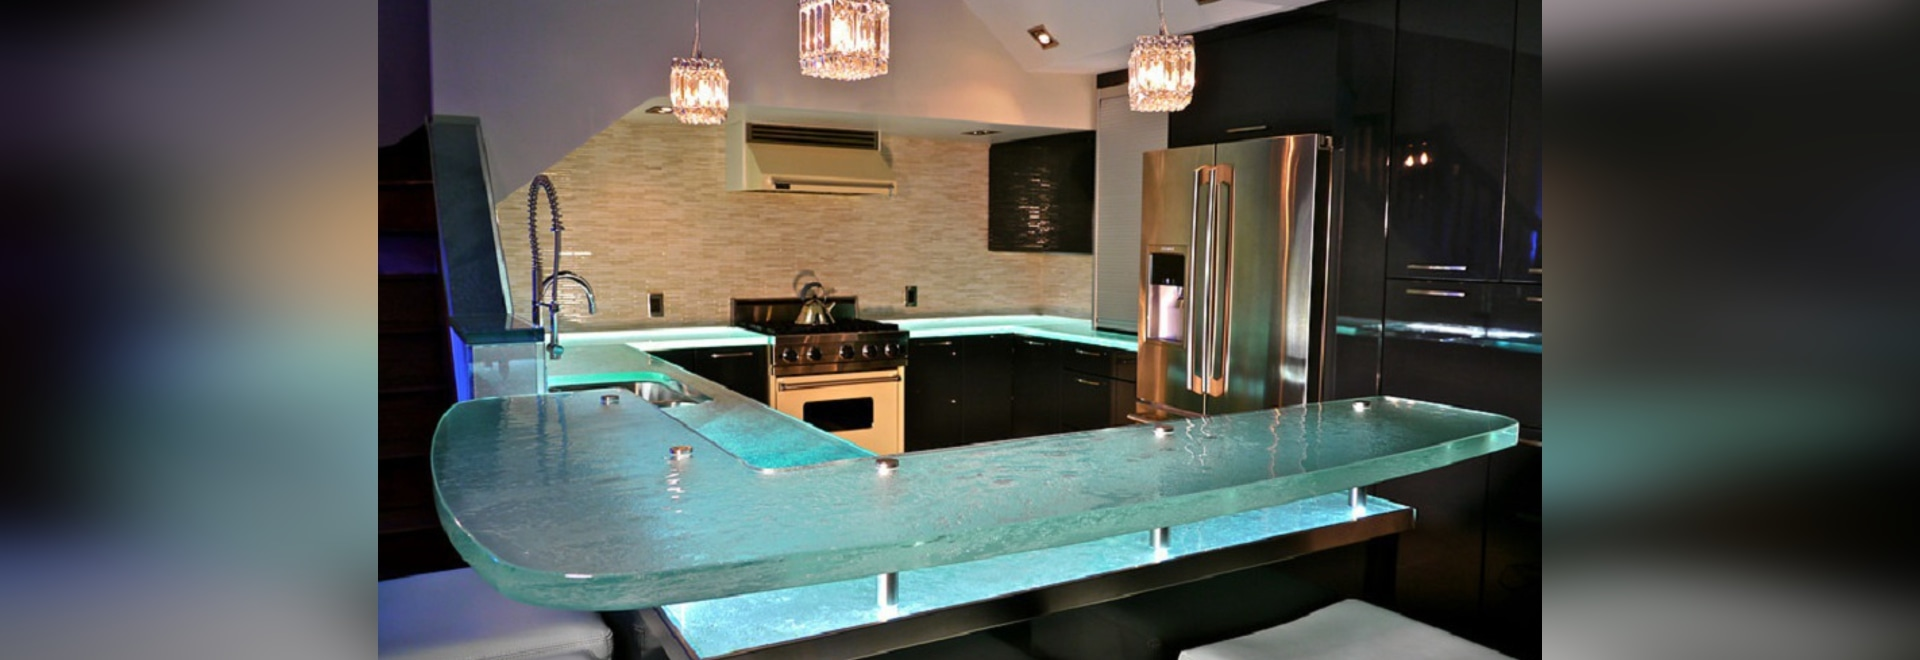 Think Glass Countertops Enhance Your Kitchen With A Thinkglass Countertop Boisbriand Qc